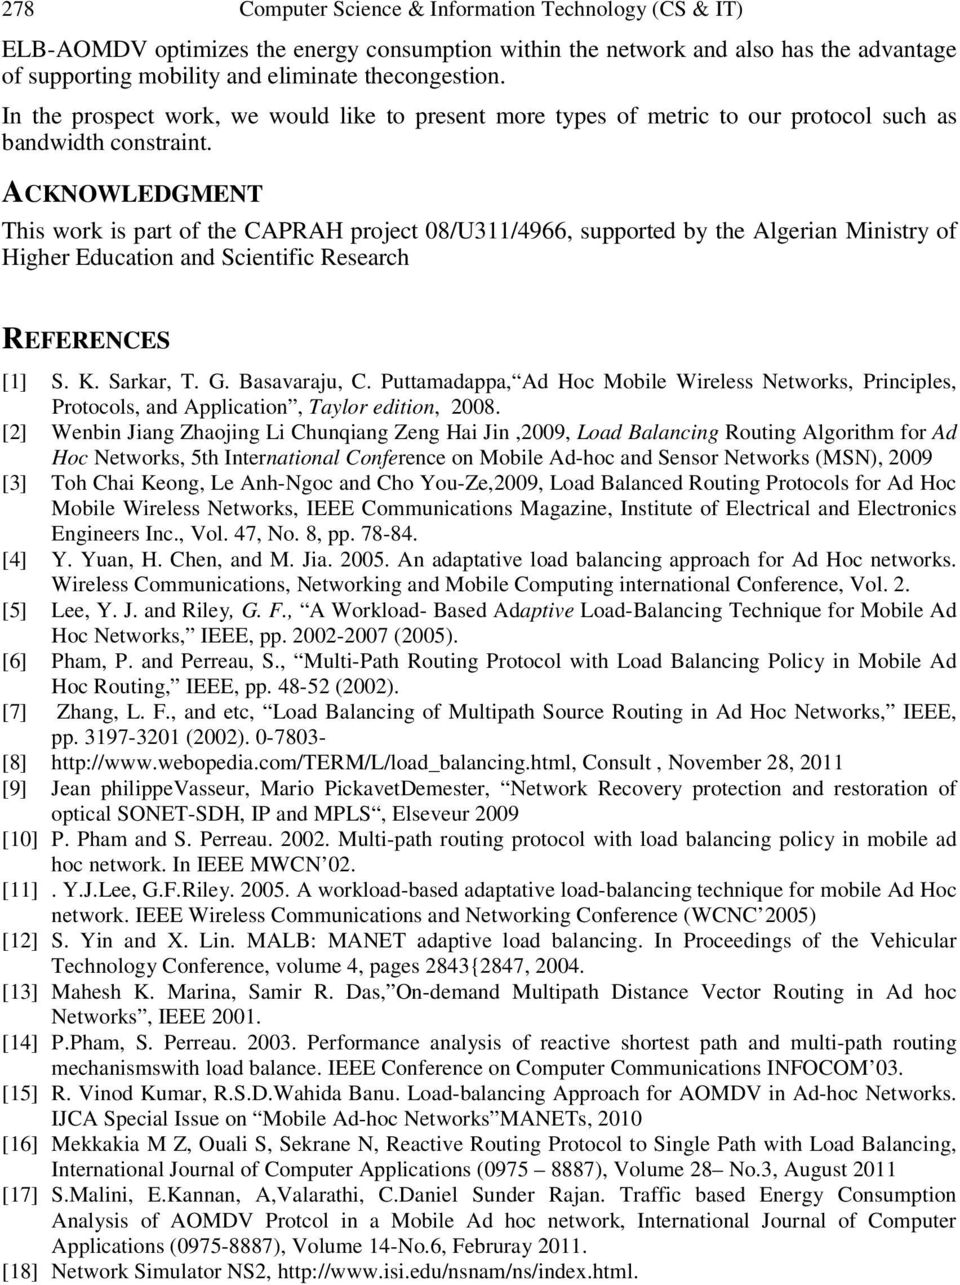 ACKNOWLEDGMENT This work is part of the CAPRAH project 08/U311/4966, supported by the Algerian Ministry of Higher Education and Scientific Research REFERENCES [1] S. K. Sarkar, T. G. Basavaraju, C.